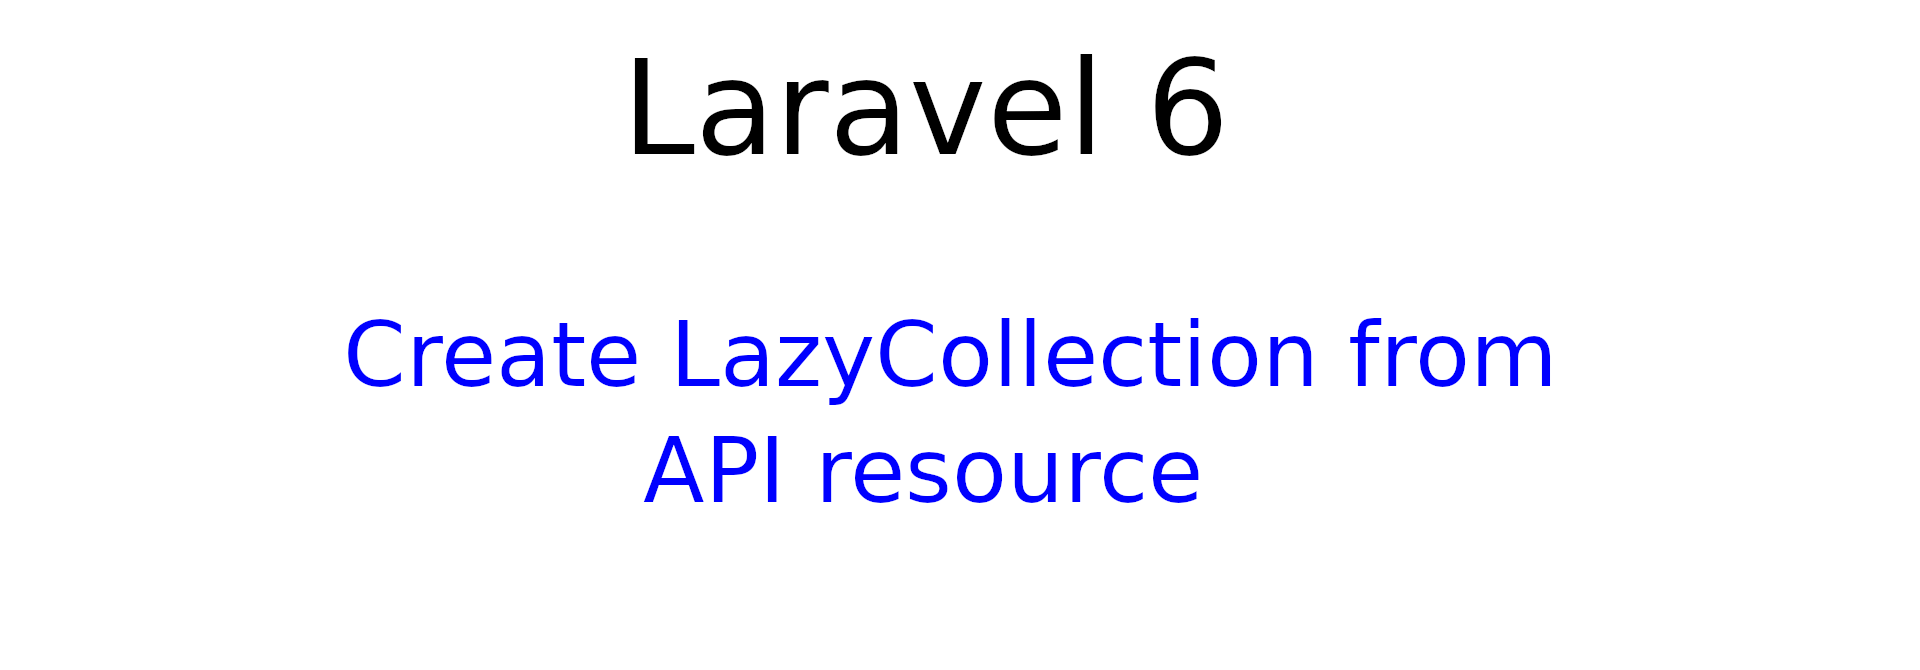 Create LazyCollection from API resource